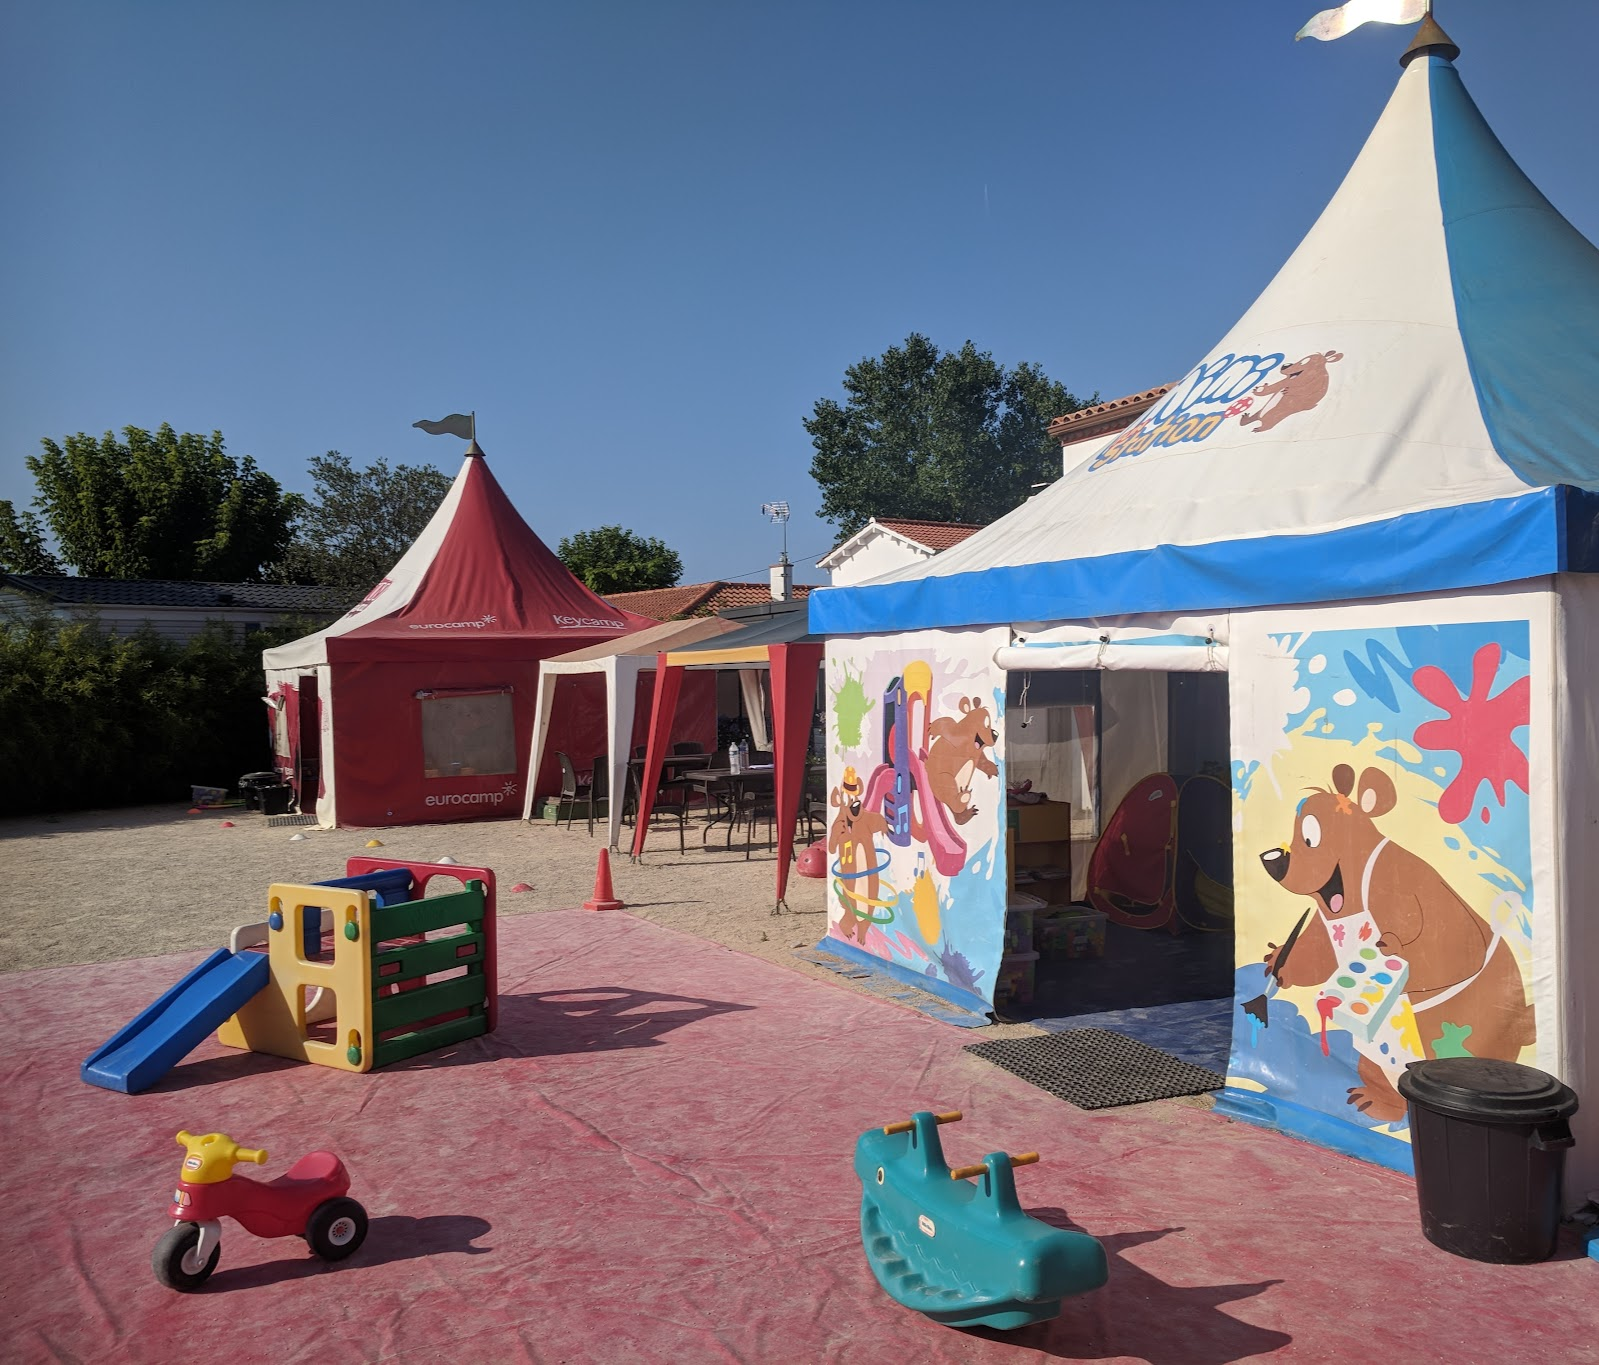 Les Ecureuils Campsite, Vendee - A Eurocamp Site near Puy du Fou (Full Review) - free kids club